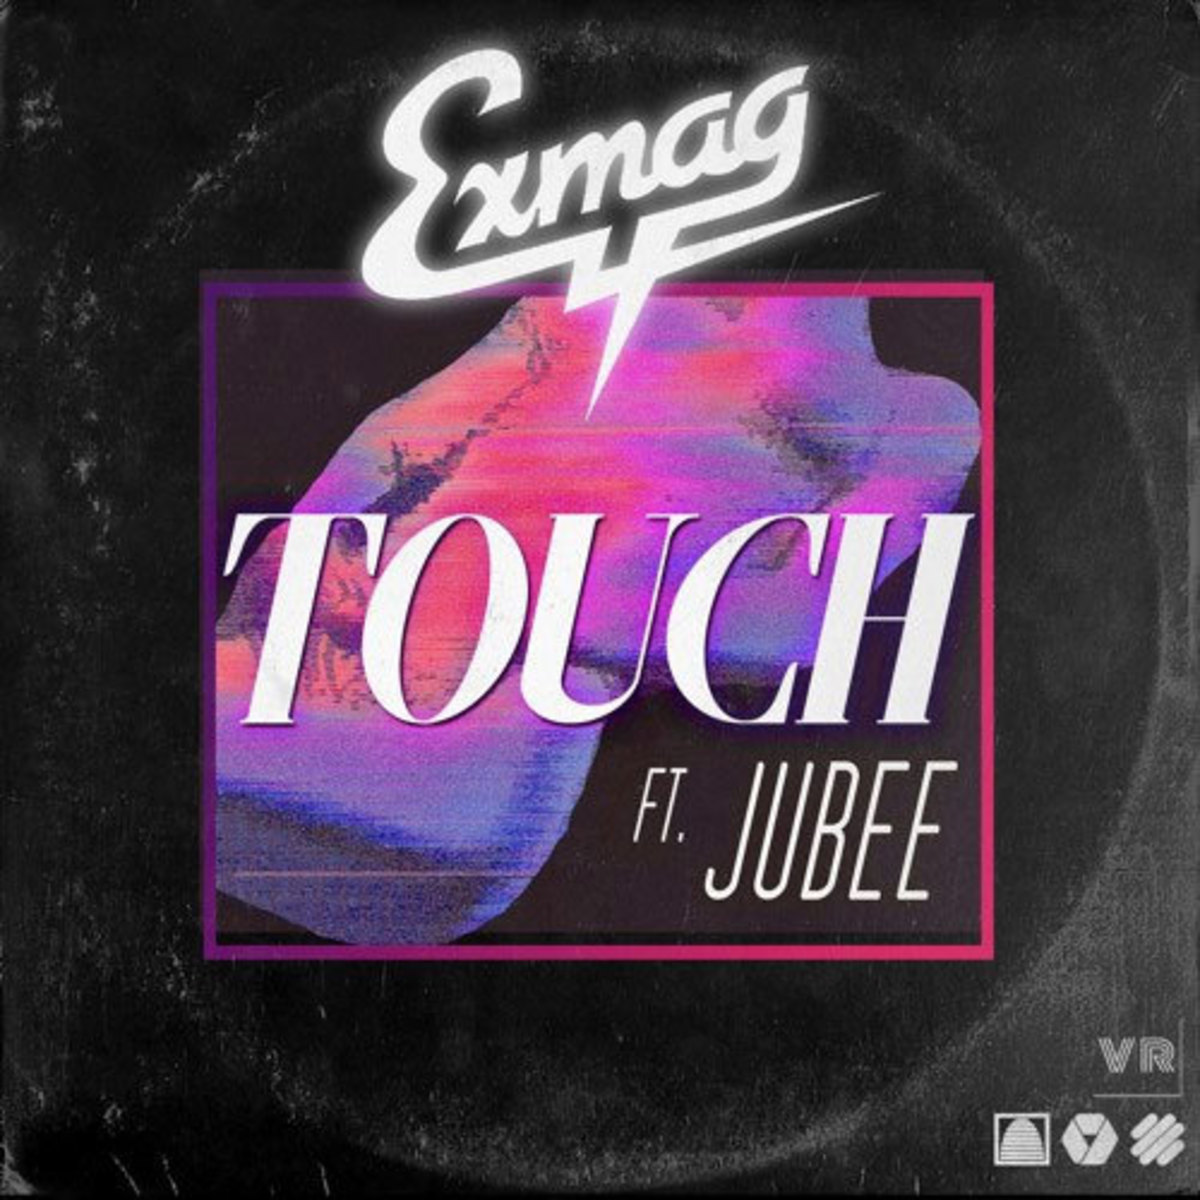 exmag-touch.jpg